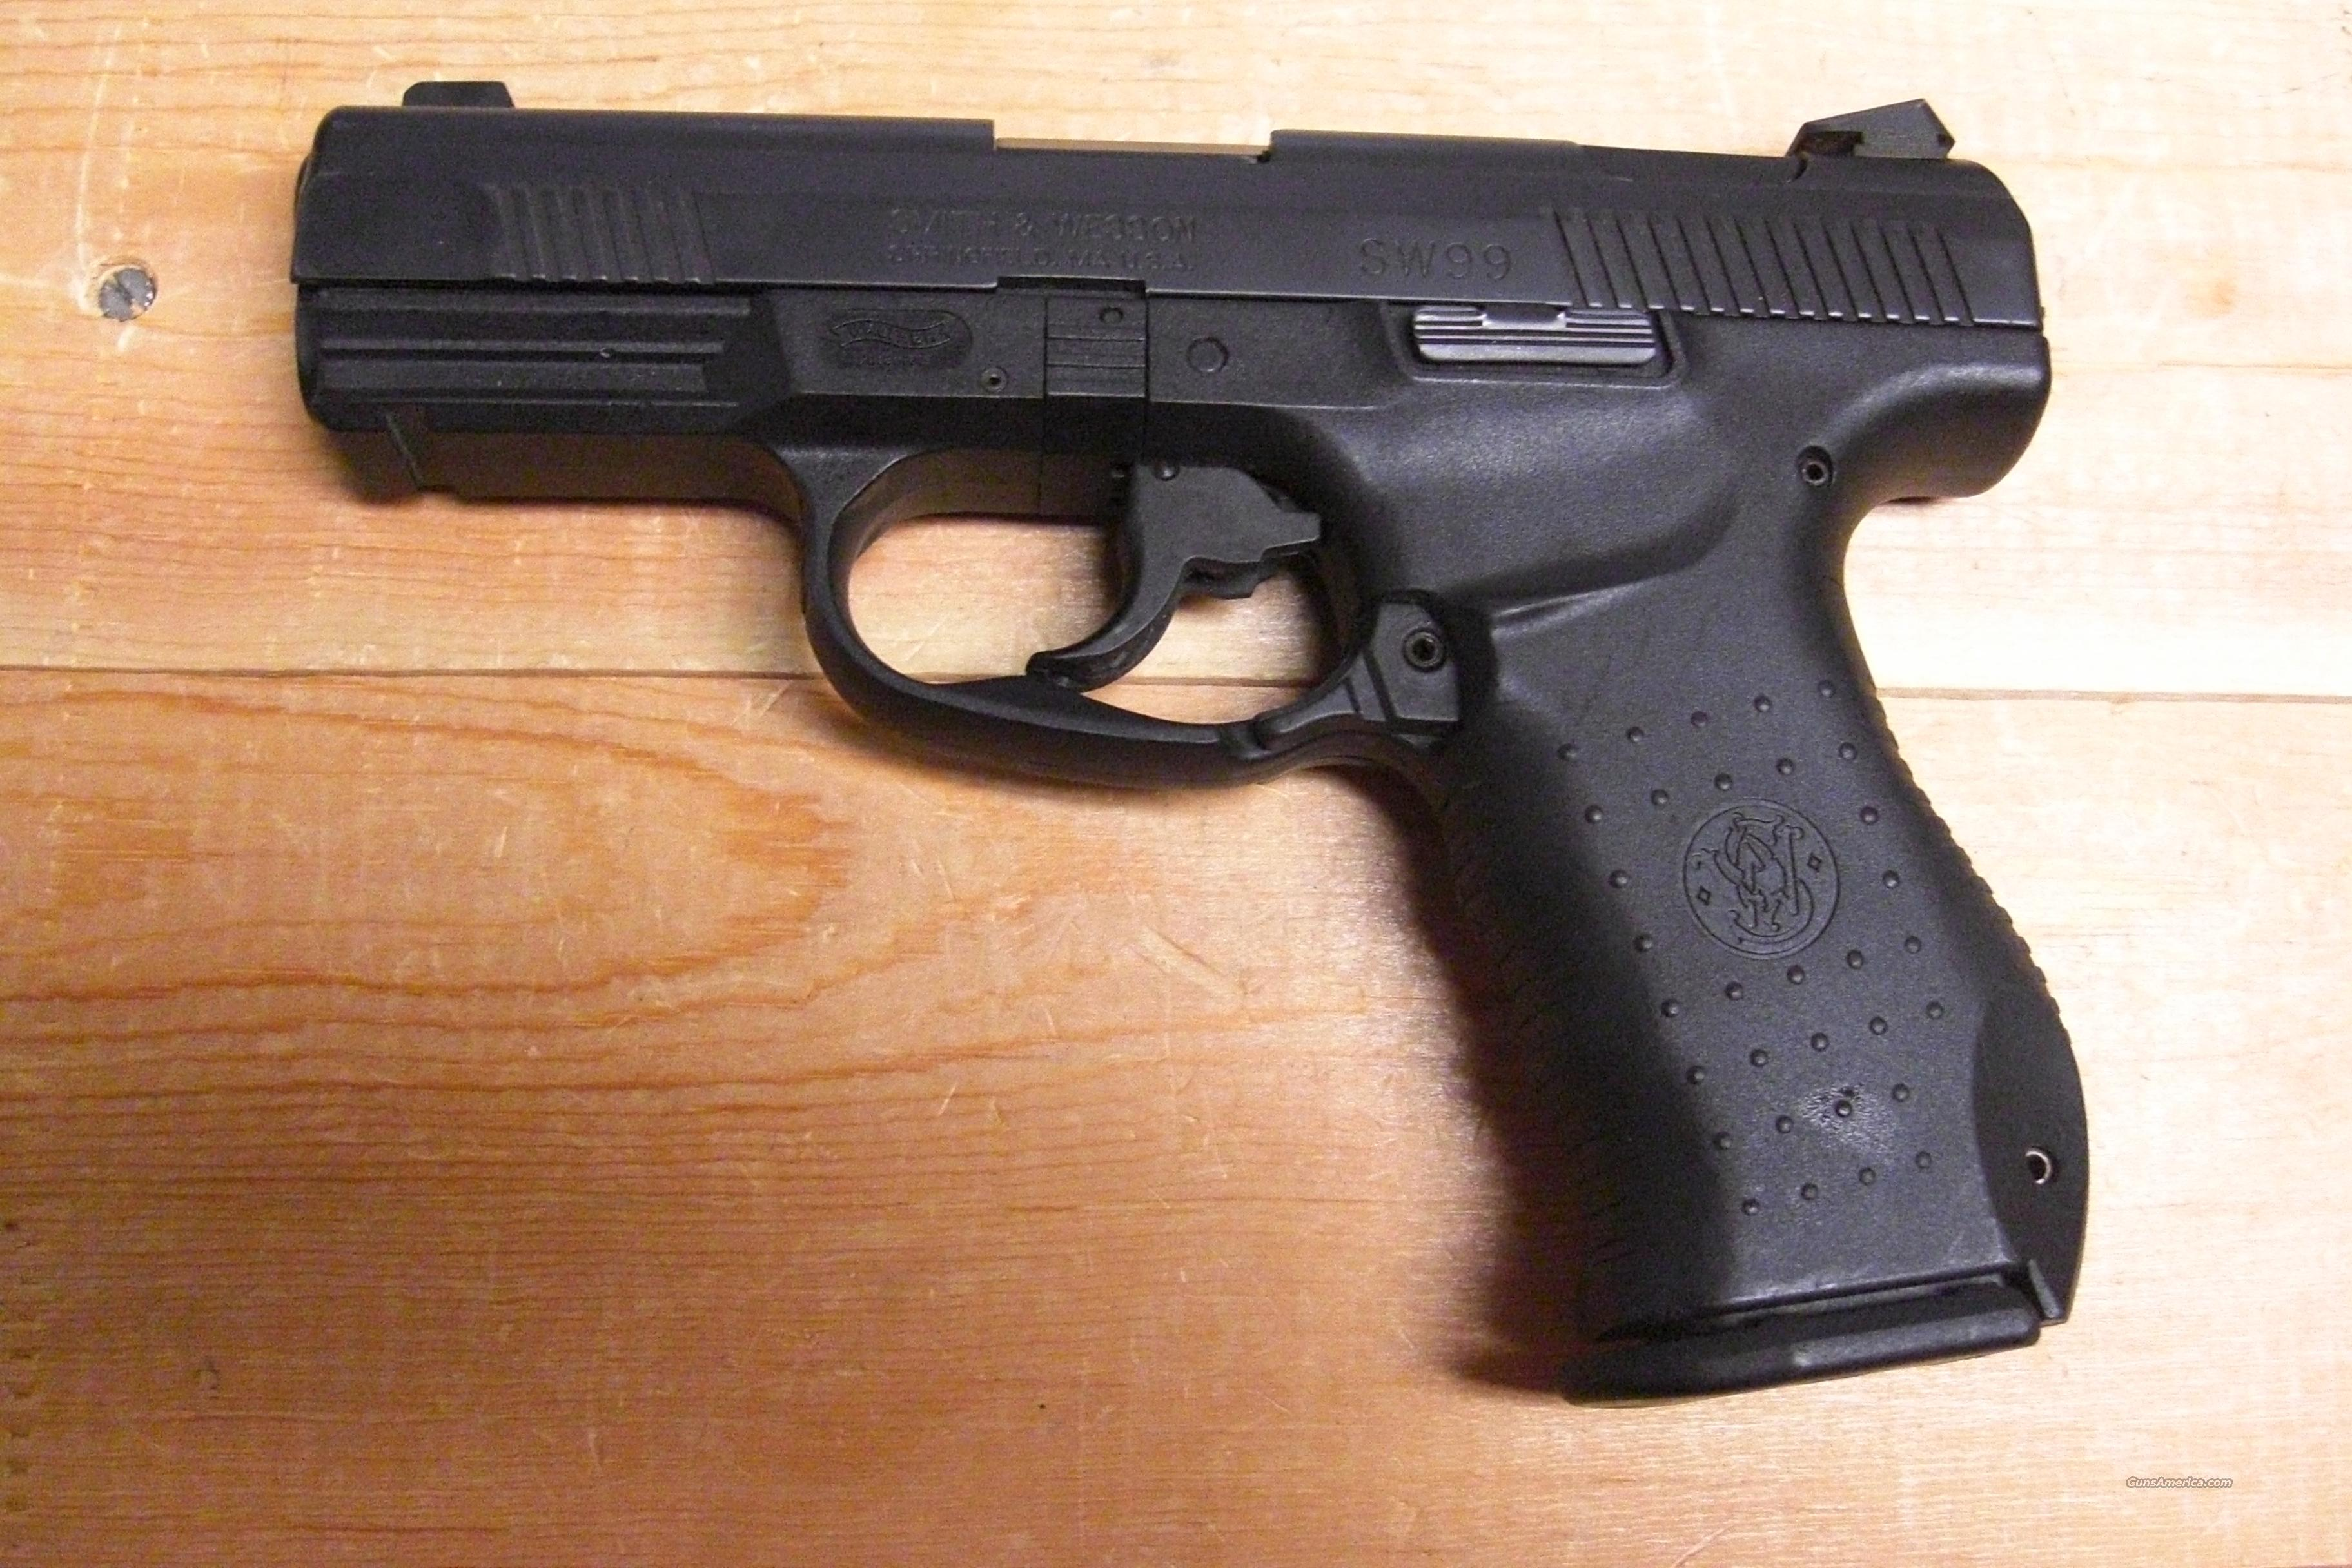 99 w/night sights  Guns > Pistols > Smith & Wesson Pistols - Autos > Polymer Frame